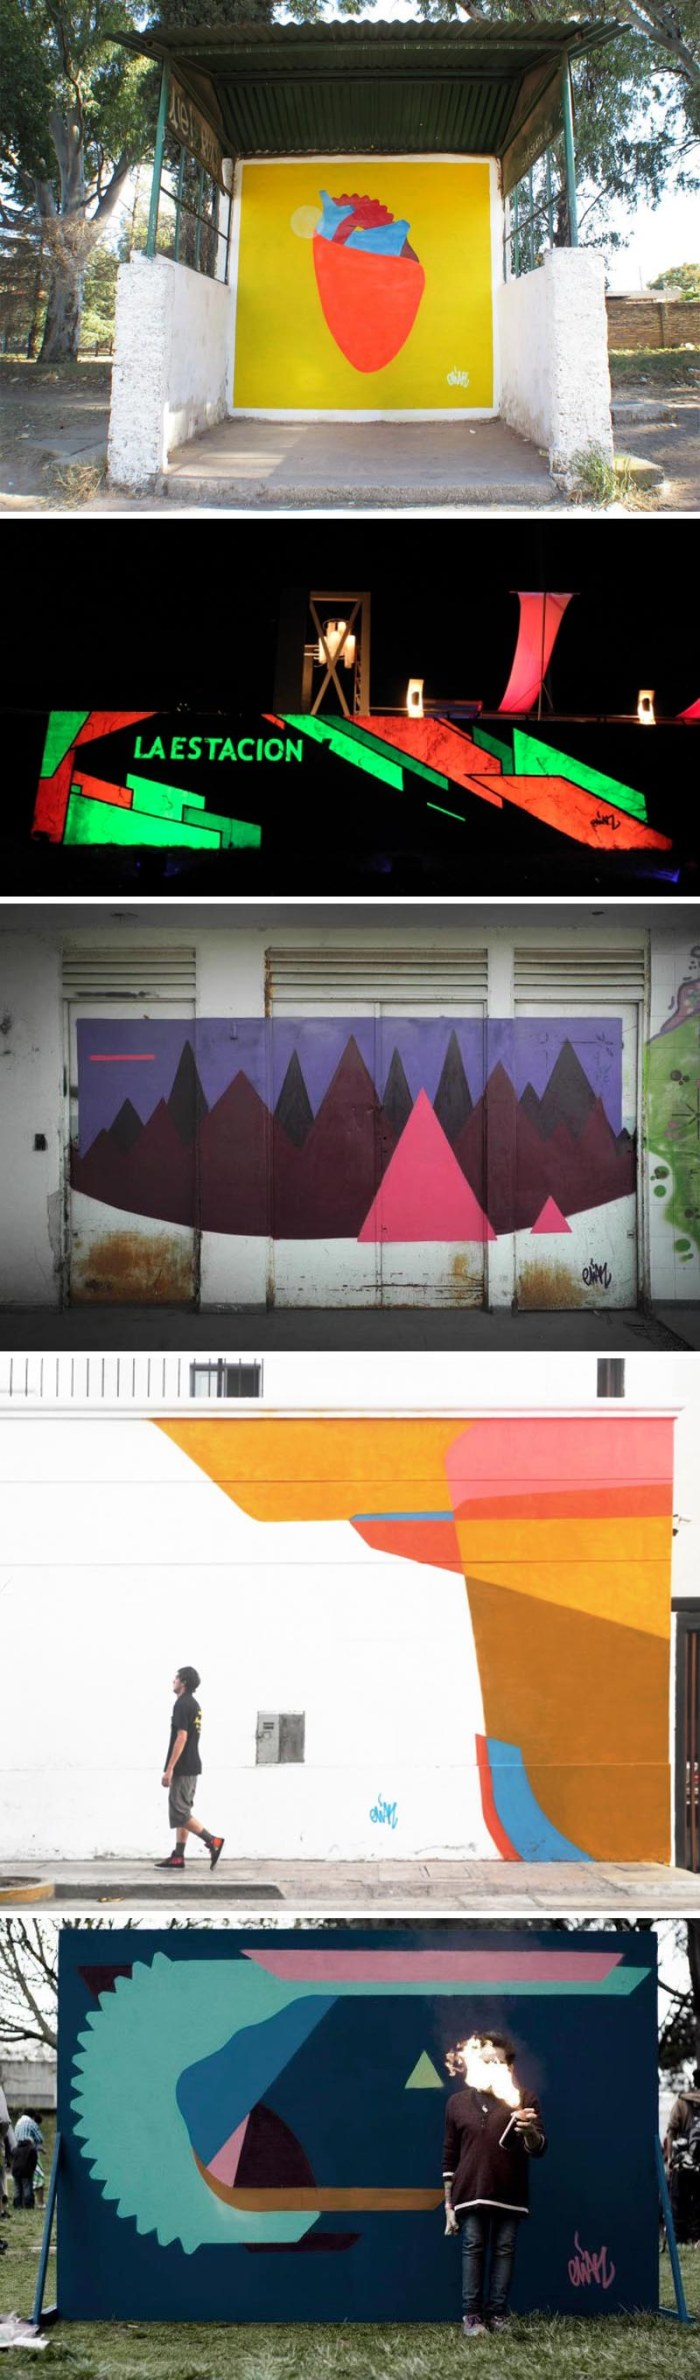 colorful street art geometric murals by Elian, Street art from Argentina, Cordoba